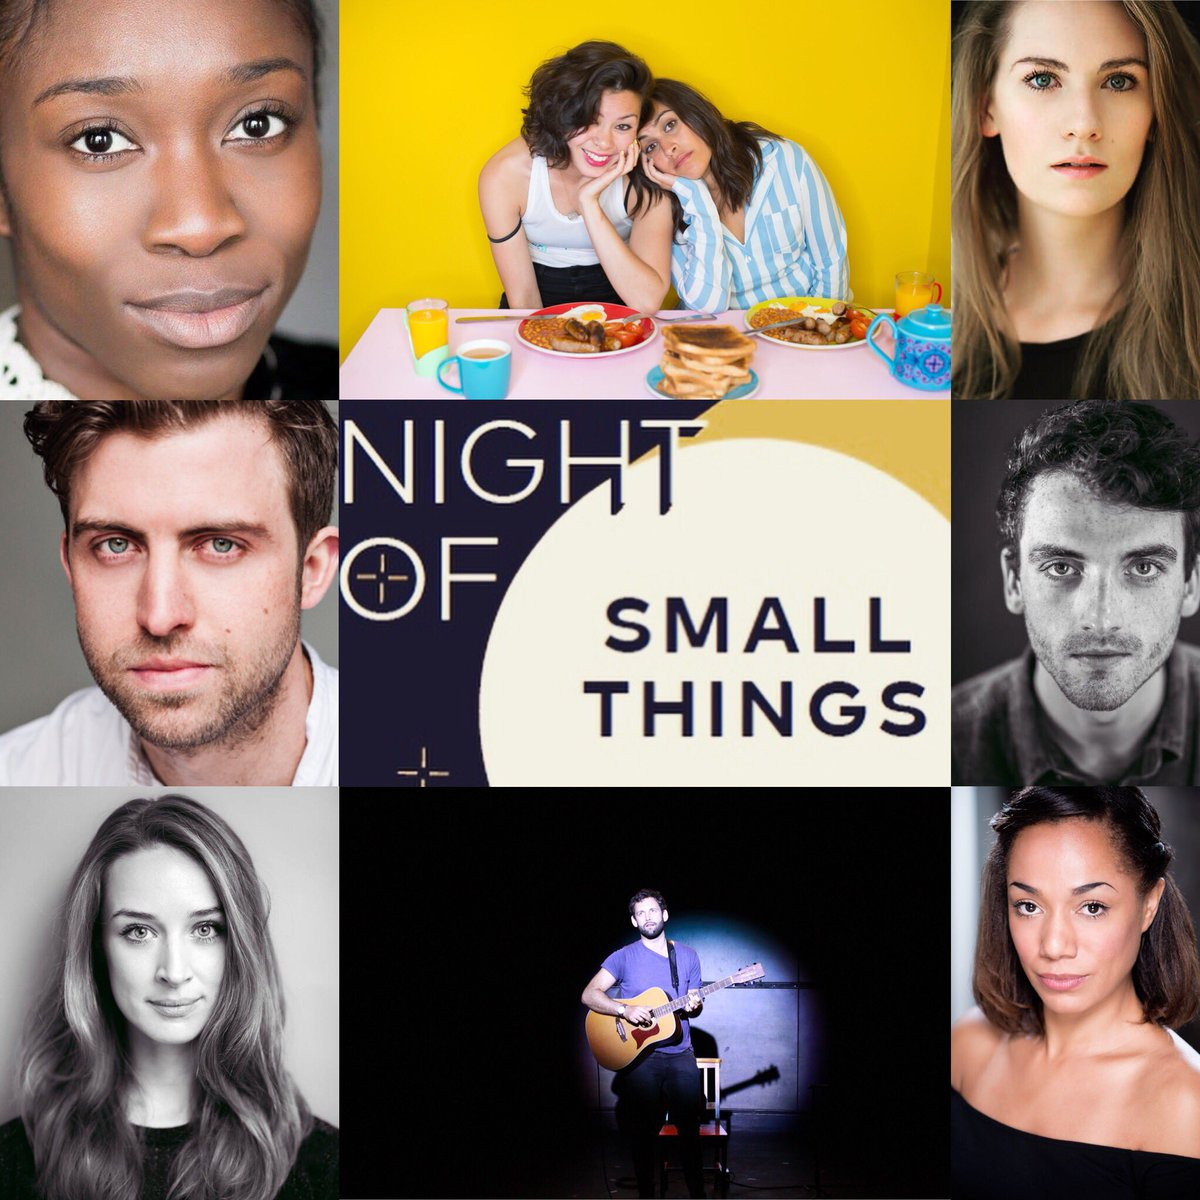 Get your #tickets for #NightofSmallThings before they're gone! #Music #Theatre #Poetry and #Comedy all for £10!  https://www. ticketweb.co.uk/artist/a-night -of-small-things-tickets/982174 &nbsp; … <br>http://pic.twitter.com/7piJo6xah8